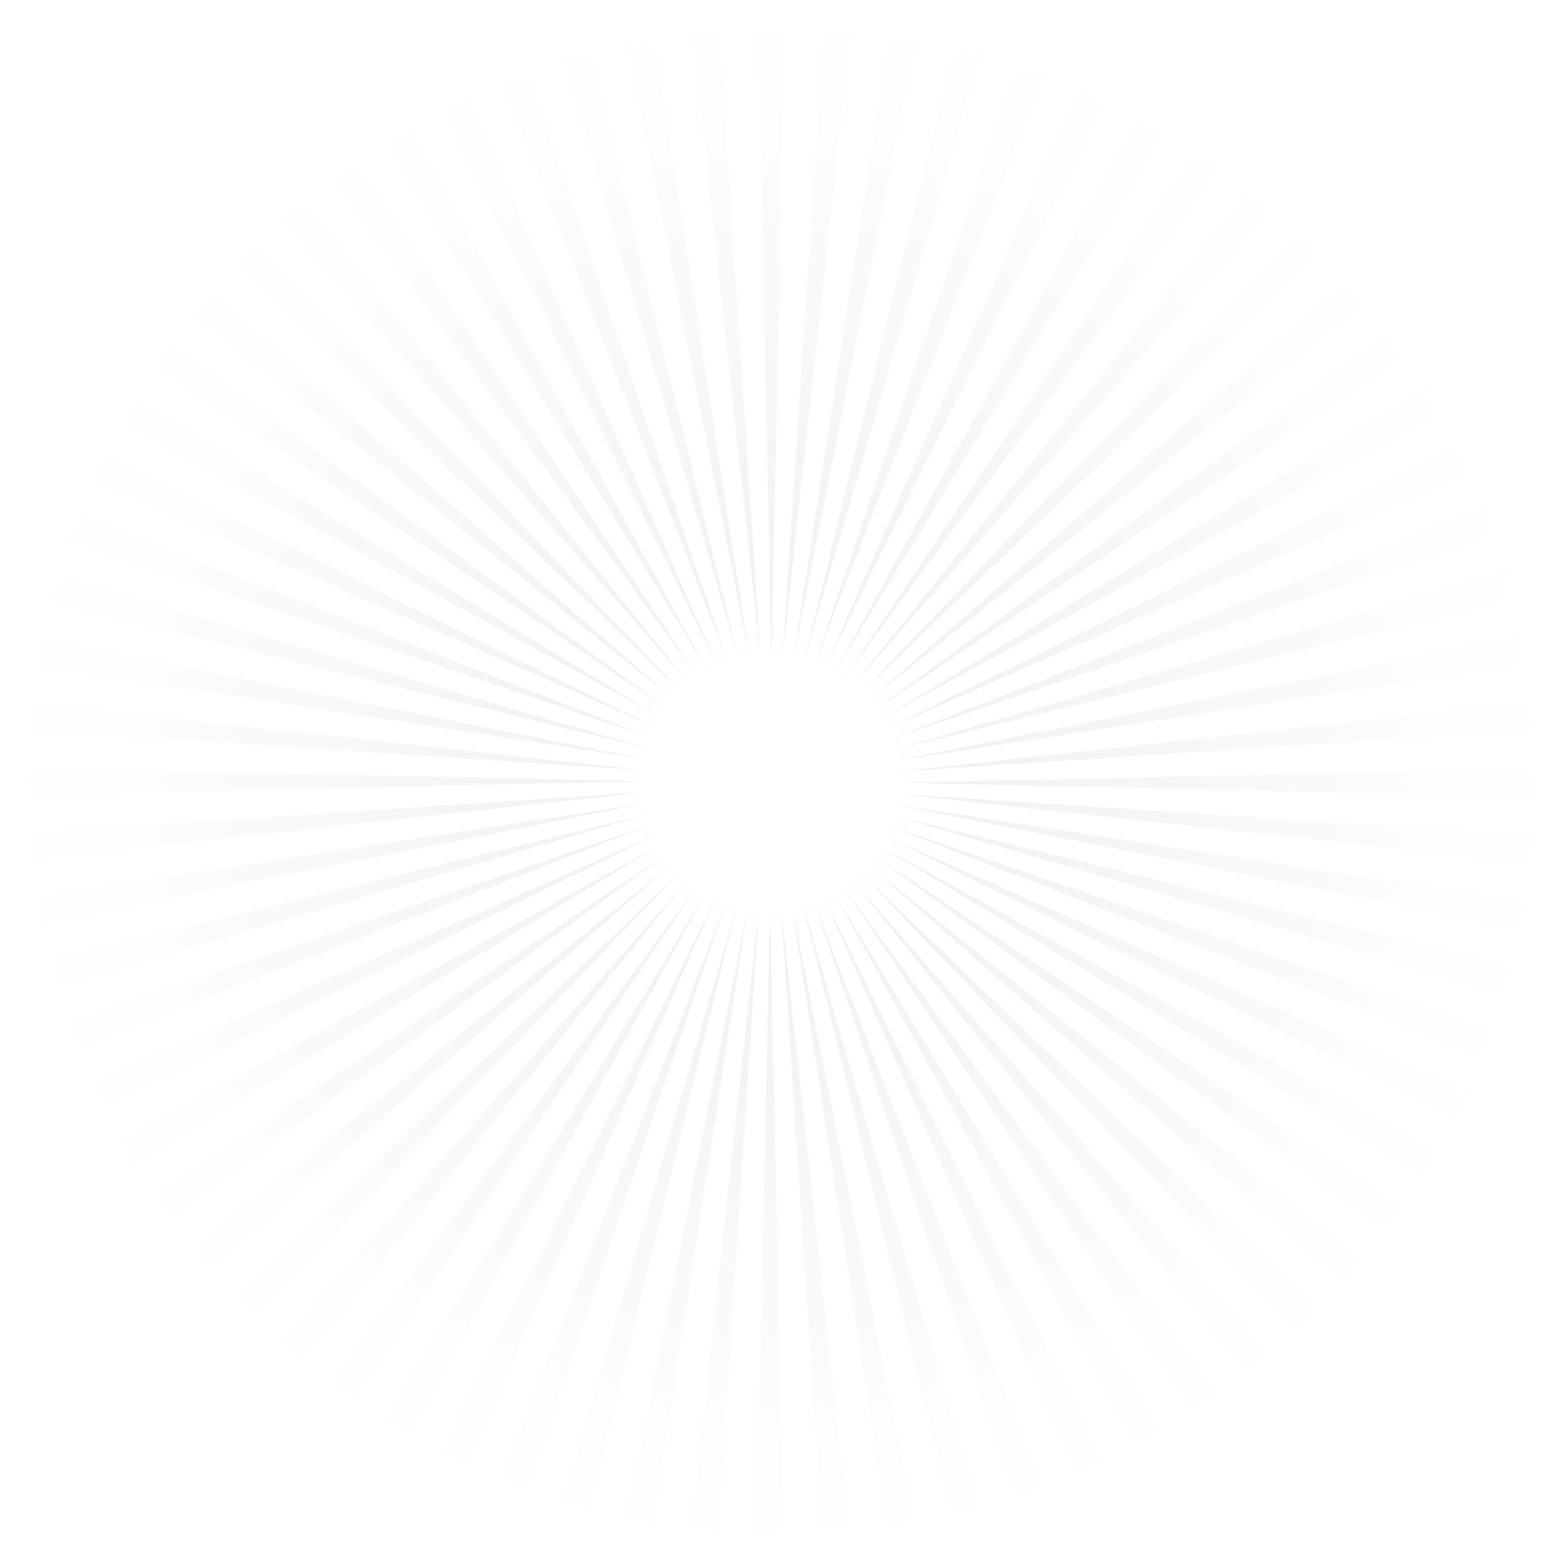 spinning img-responsive animated fadeIn